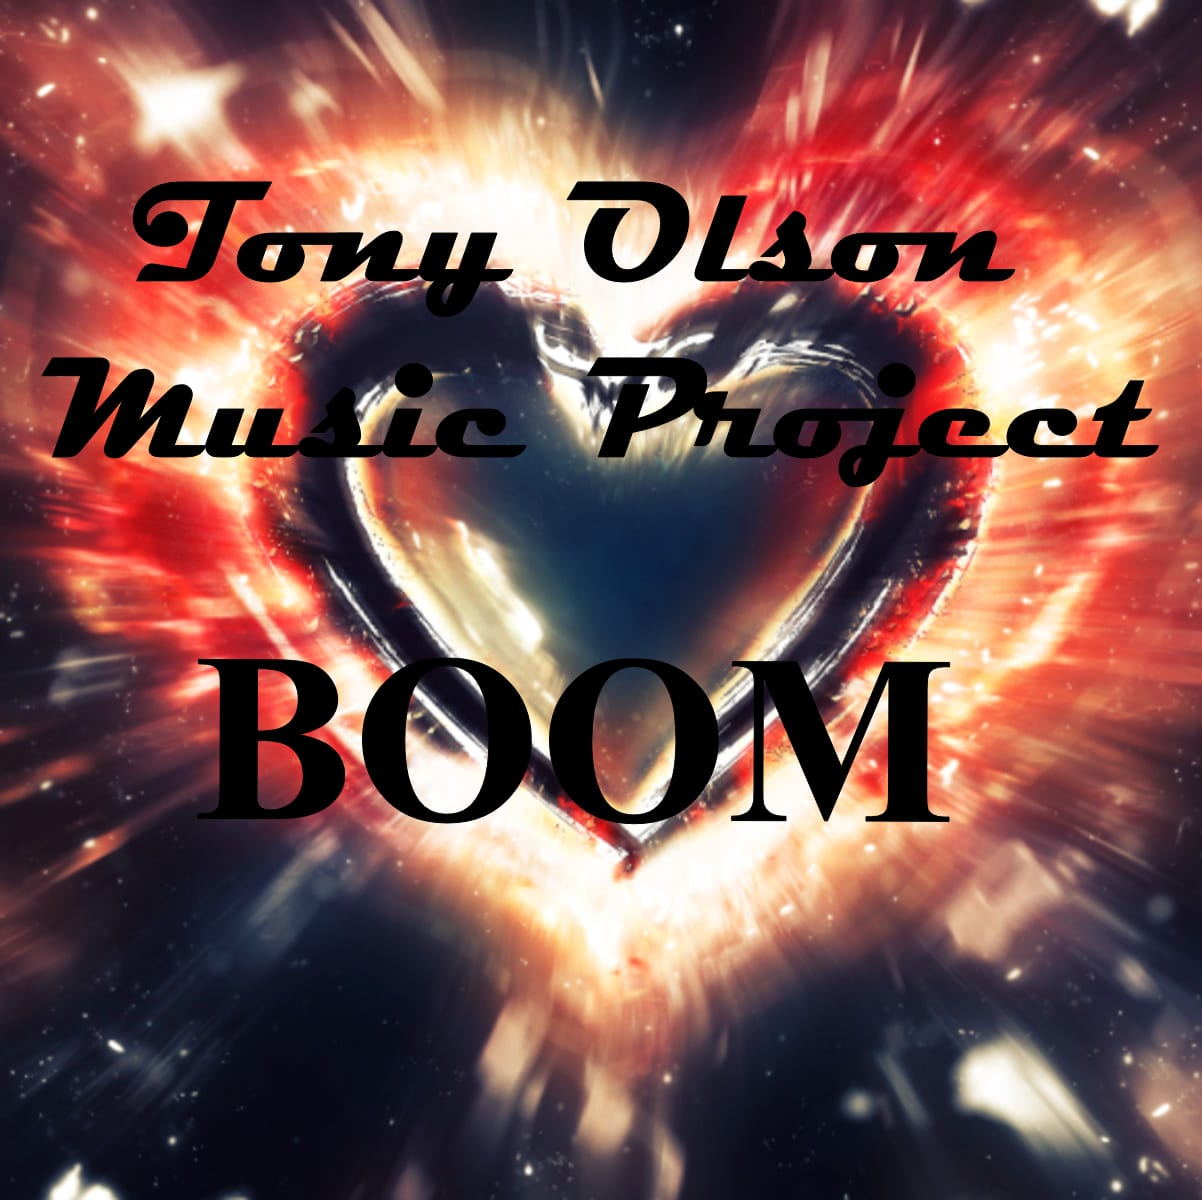 The Tony Olson Music Project - Boom